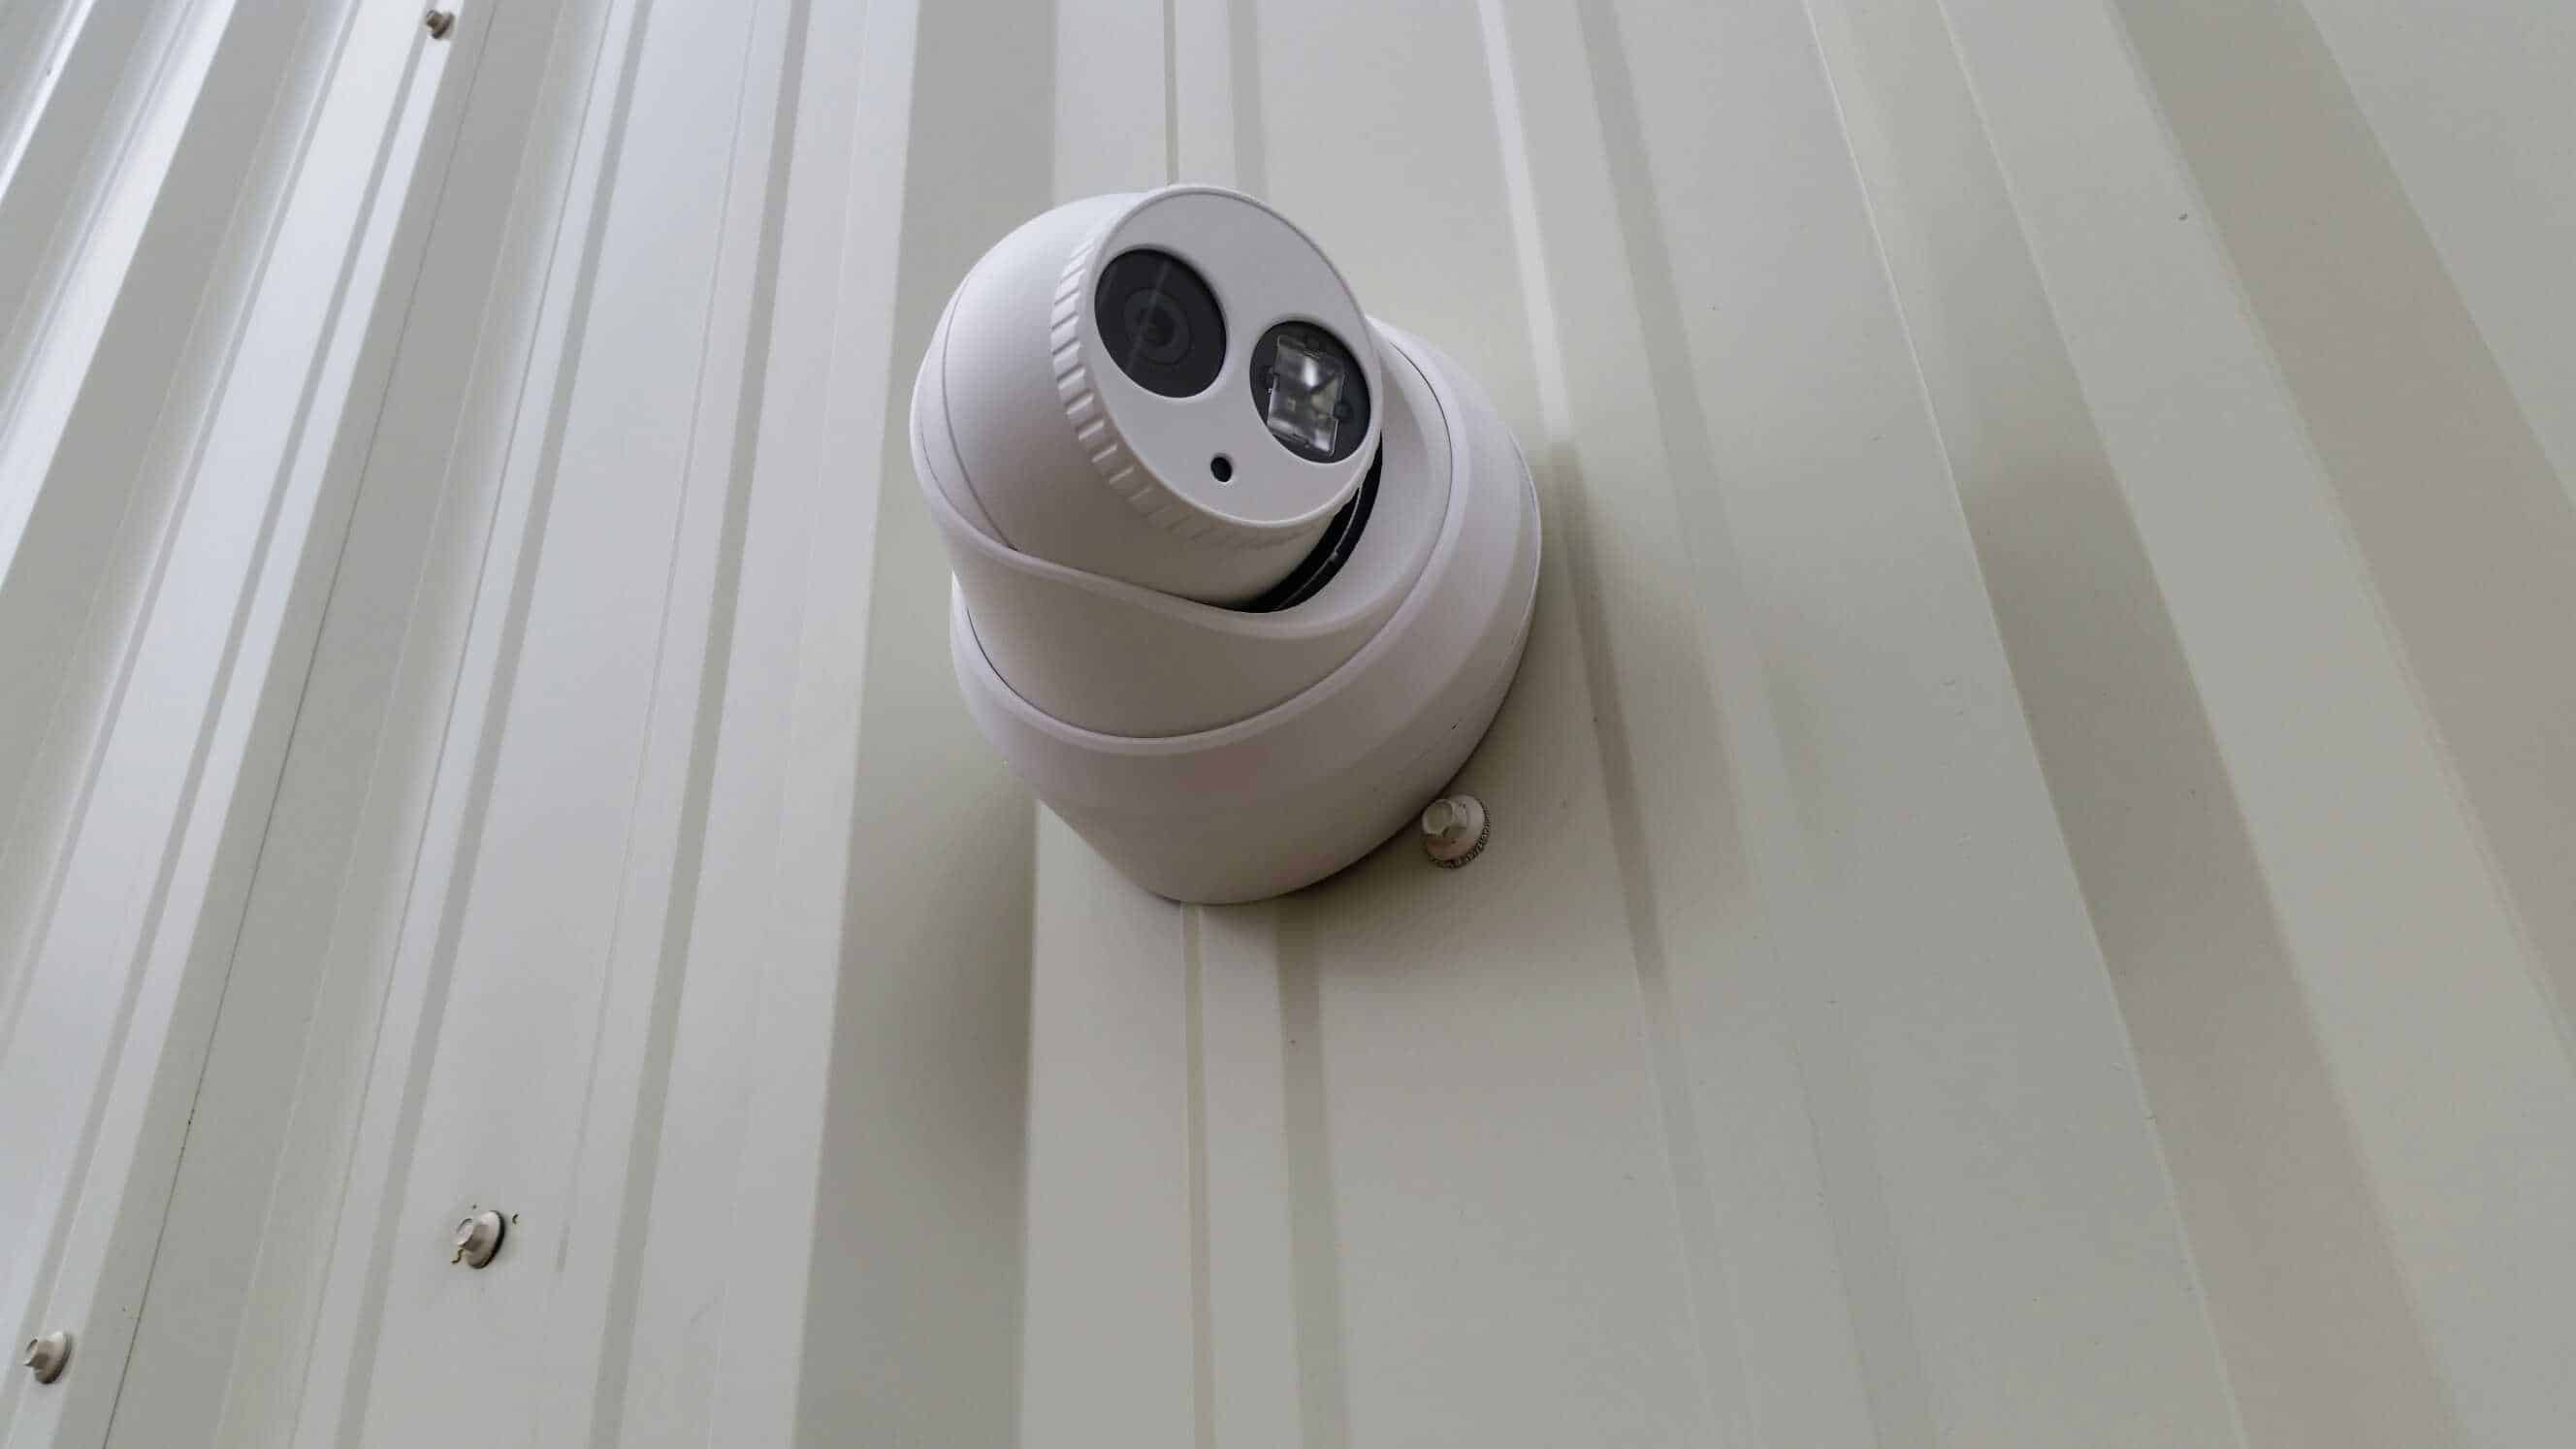 What is a Turret Camera? – How It Can Safeguard Your Home